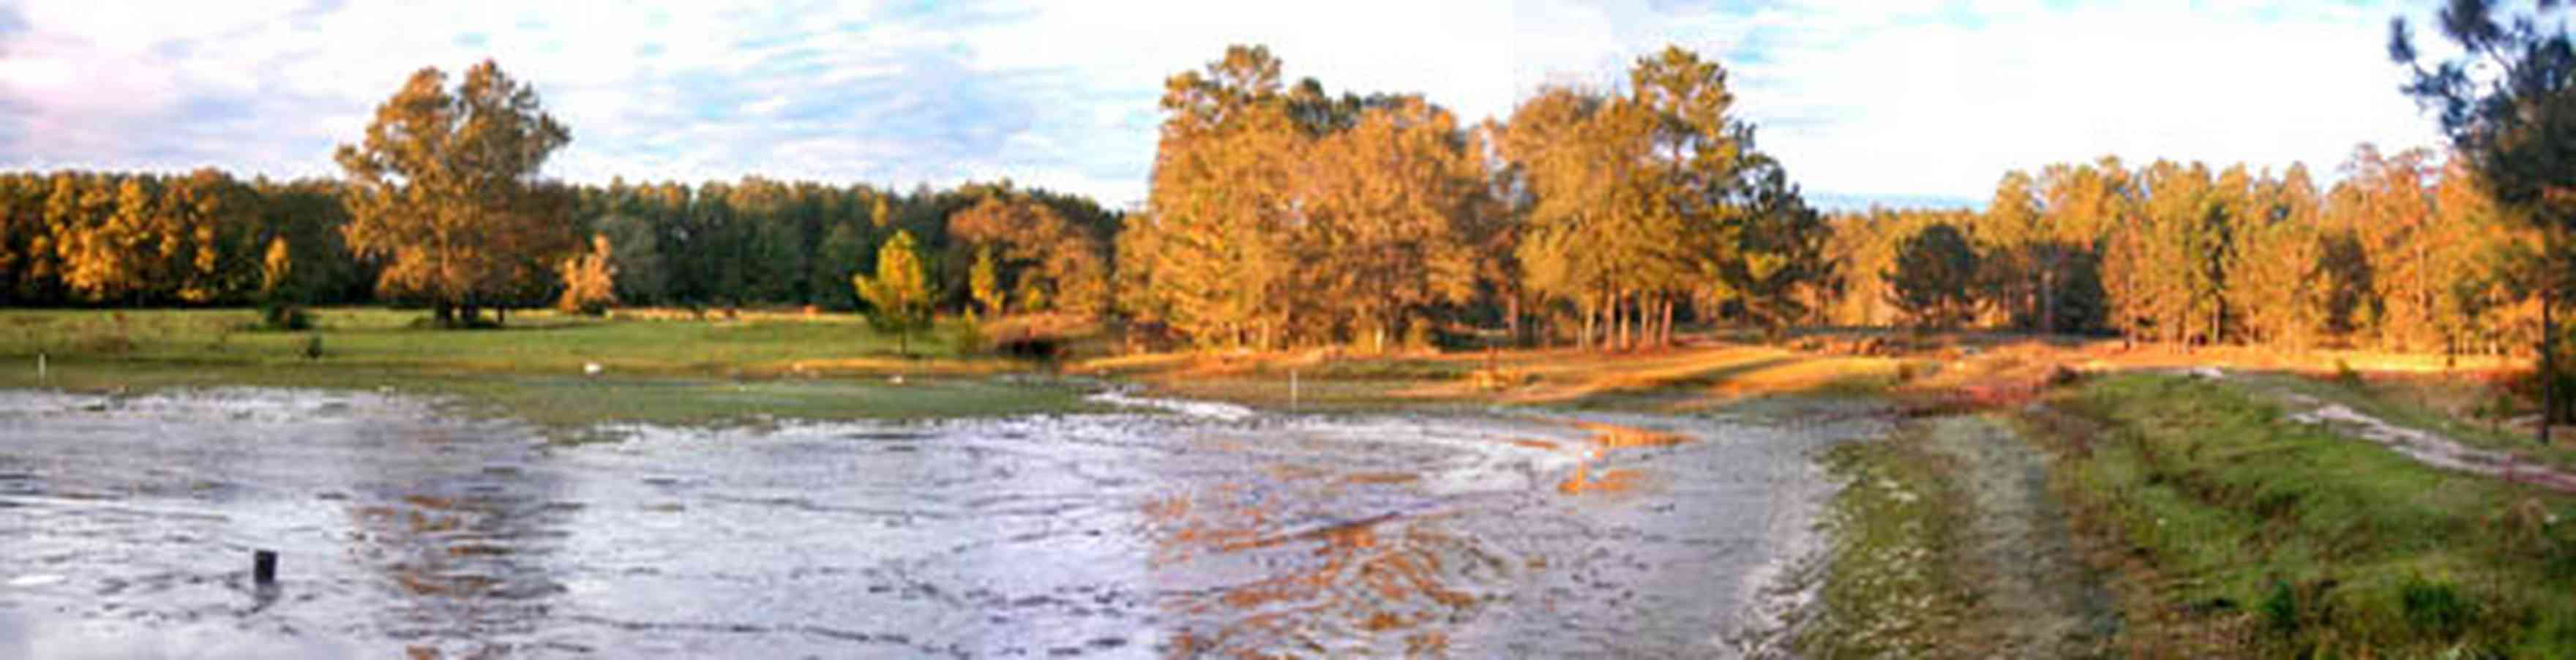 Milton:-Stewart-Farm_01.jpg:  fish farm, pond, levee, oak trees, lake, catfish pond, shrimp pond, prawns